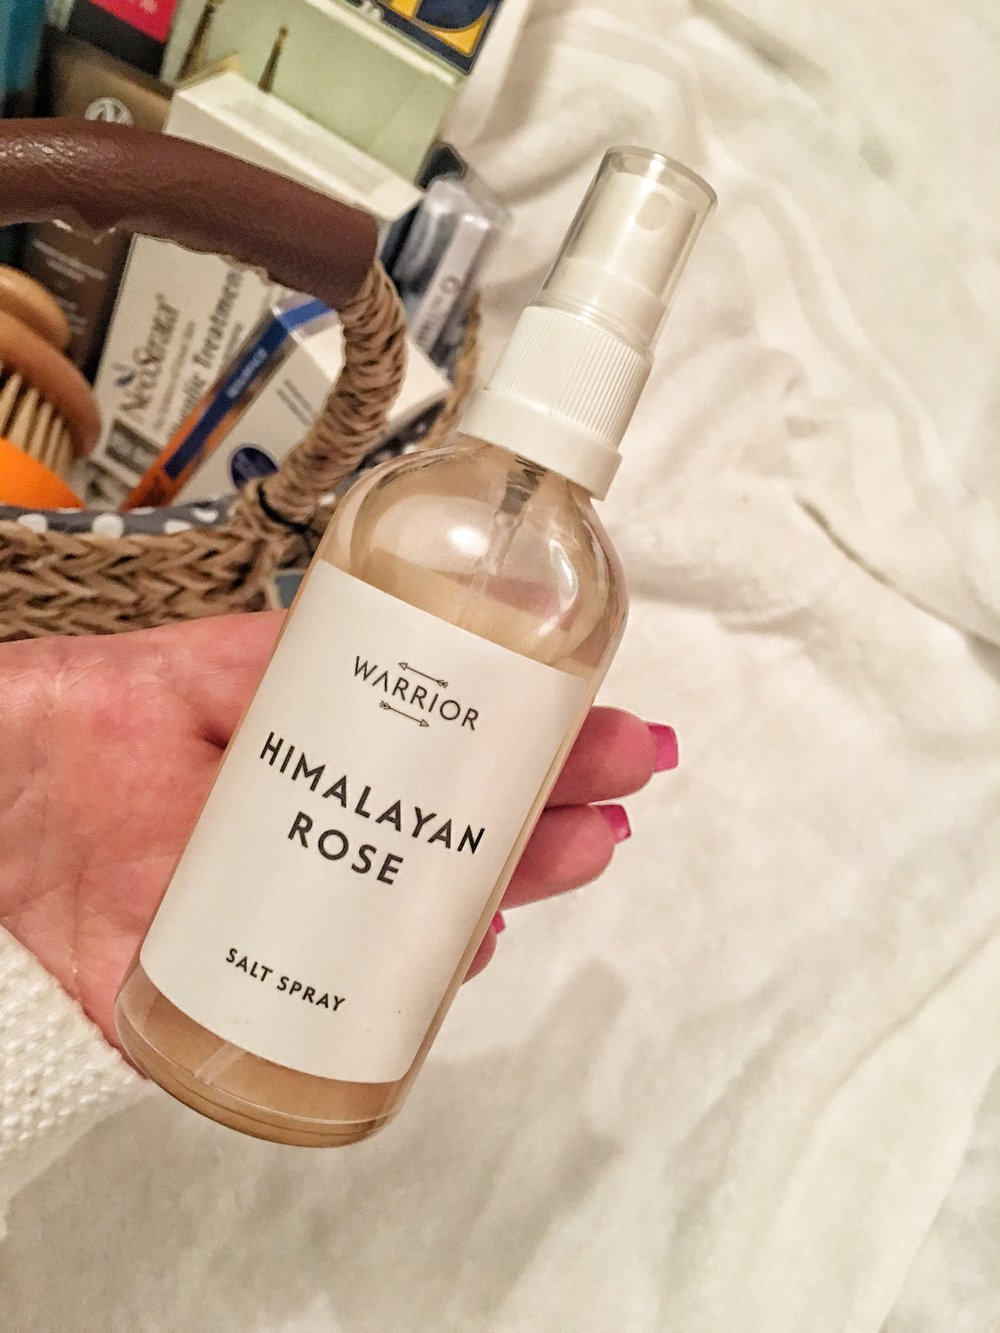 Irish product! Warrior Himalayan Rose salt spray for beachy textured hair (and it smells divine).